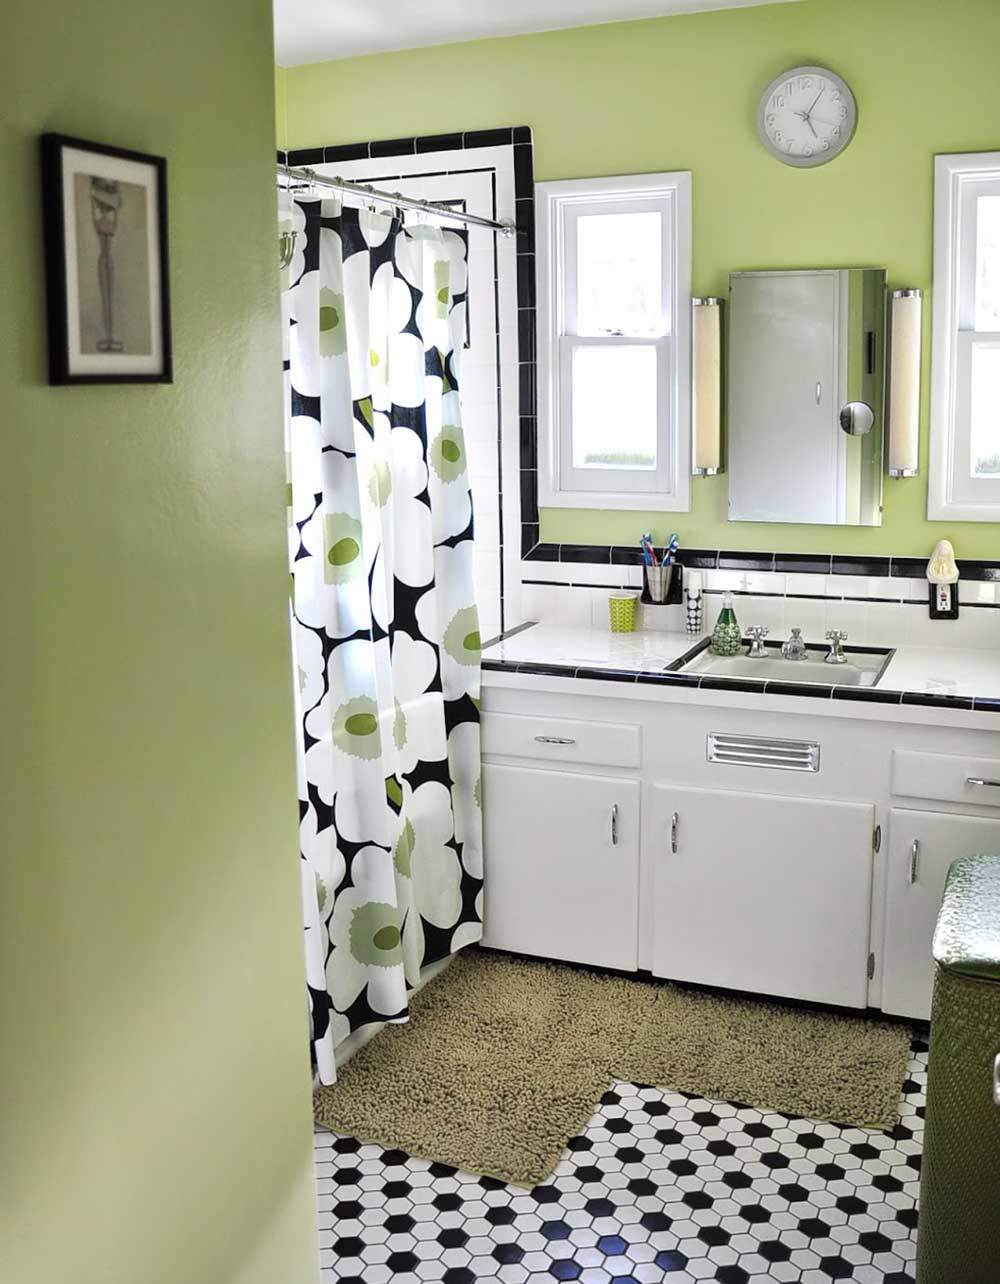 Vintage yellow tile bathroom - Vintage Black And White Tile Bathroom